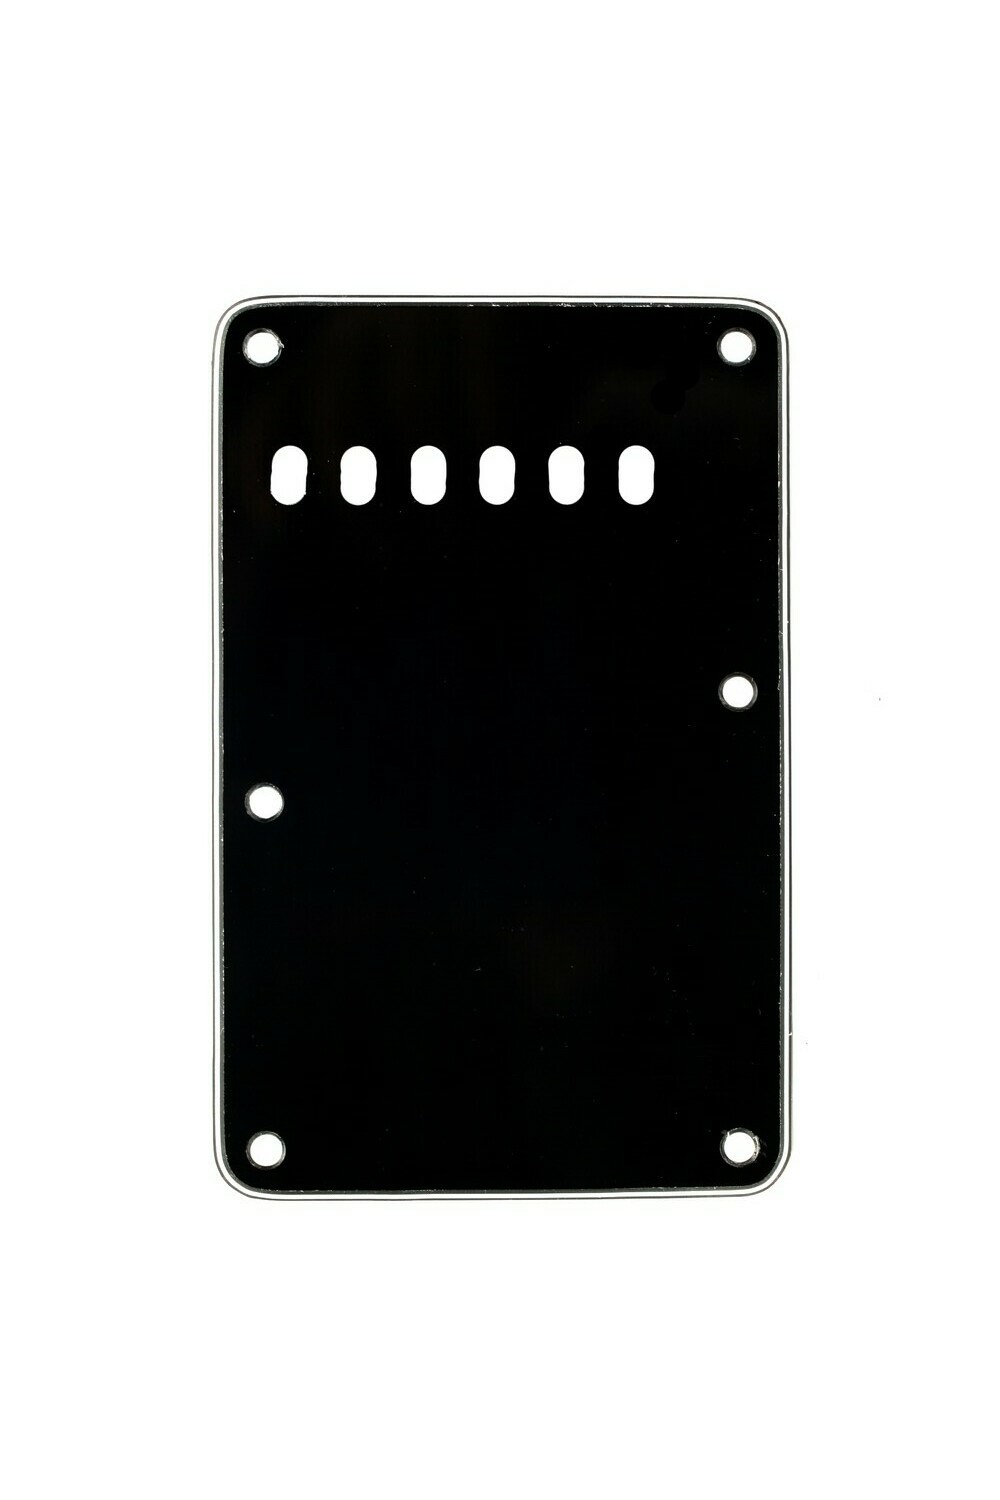 Brio Black Vintage Style Back Plate Tremolo Cover 3 ply - US/Mexican Fender®Strat® Fit